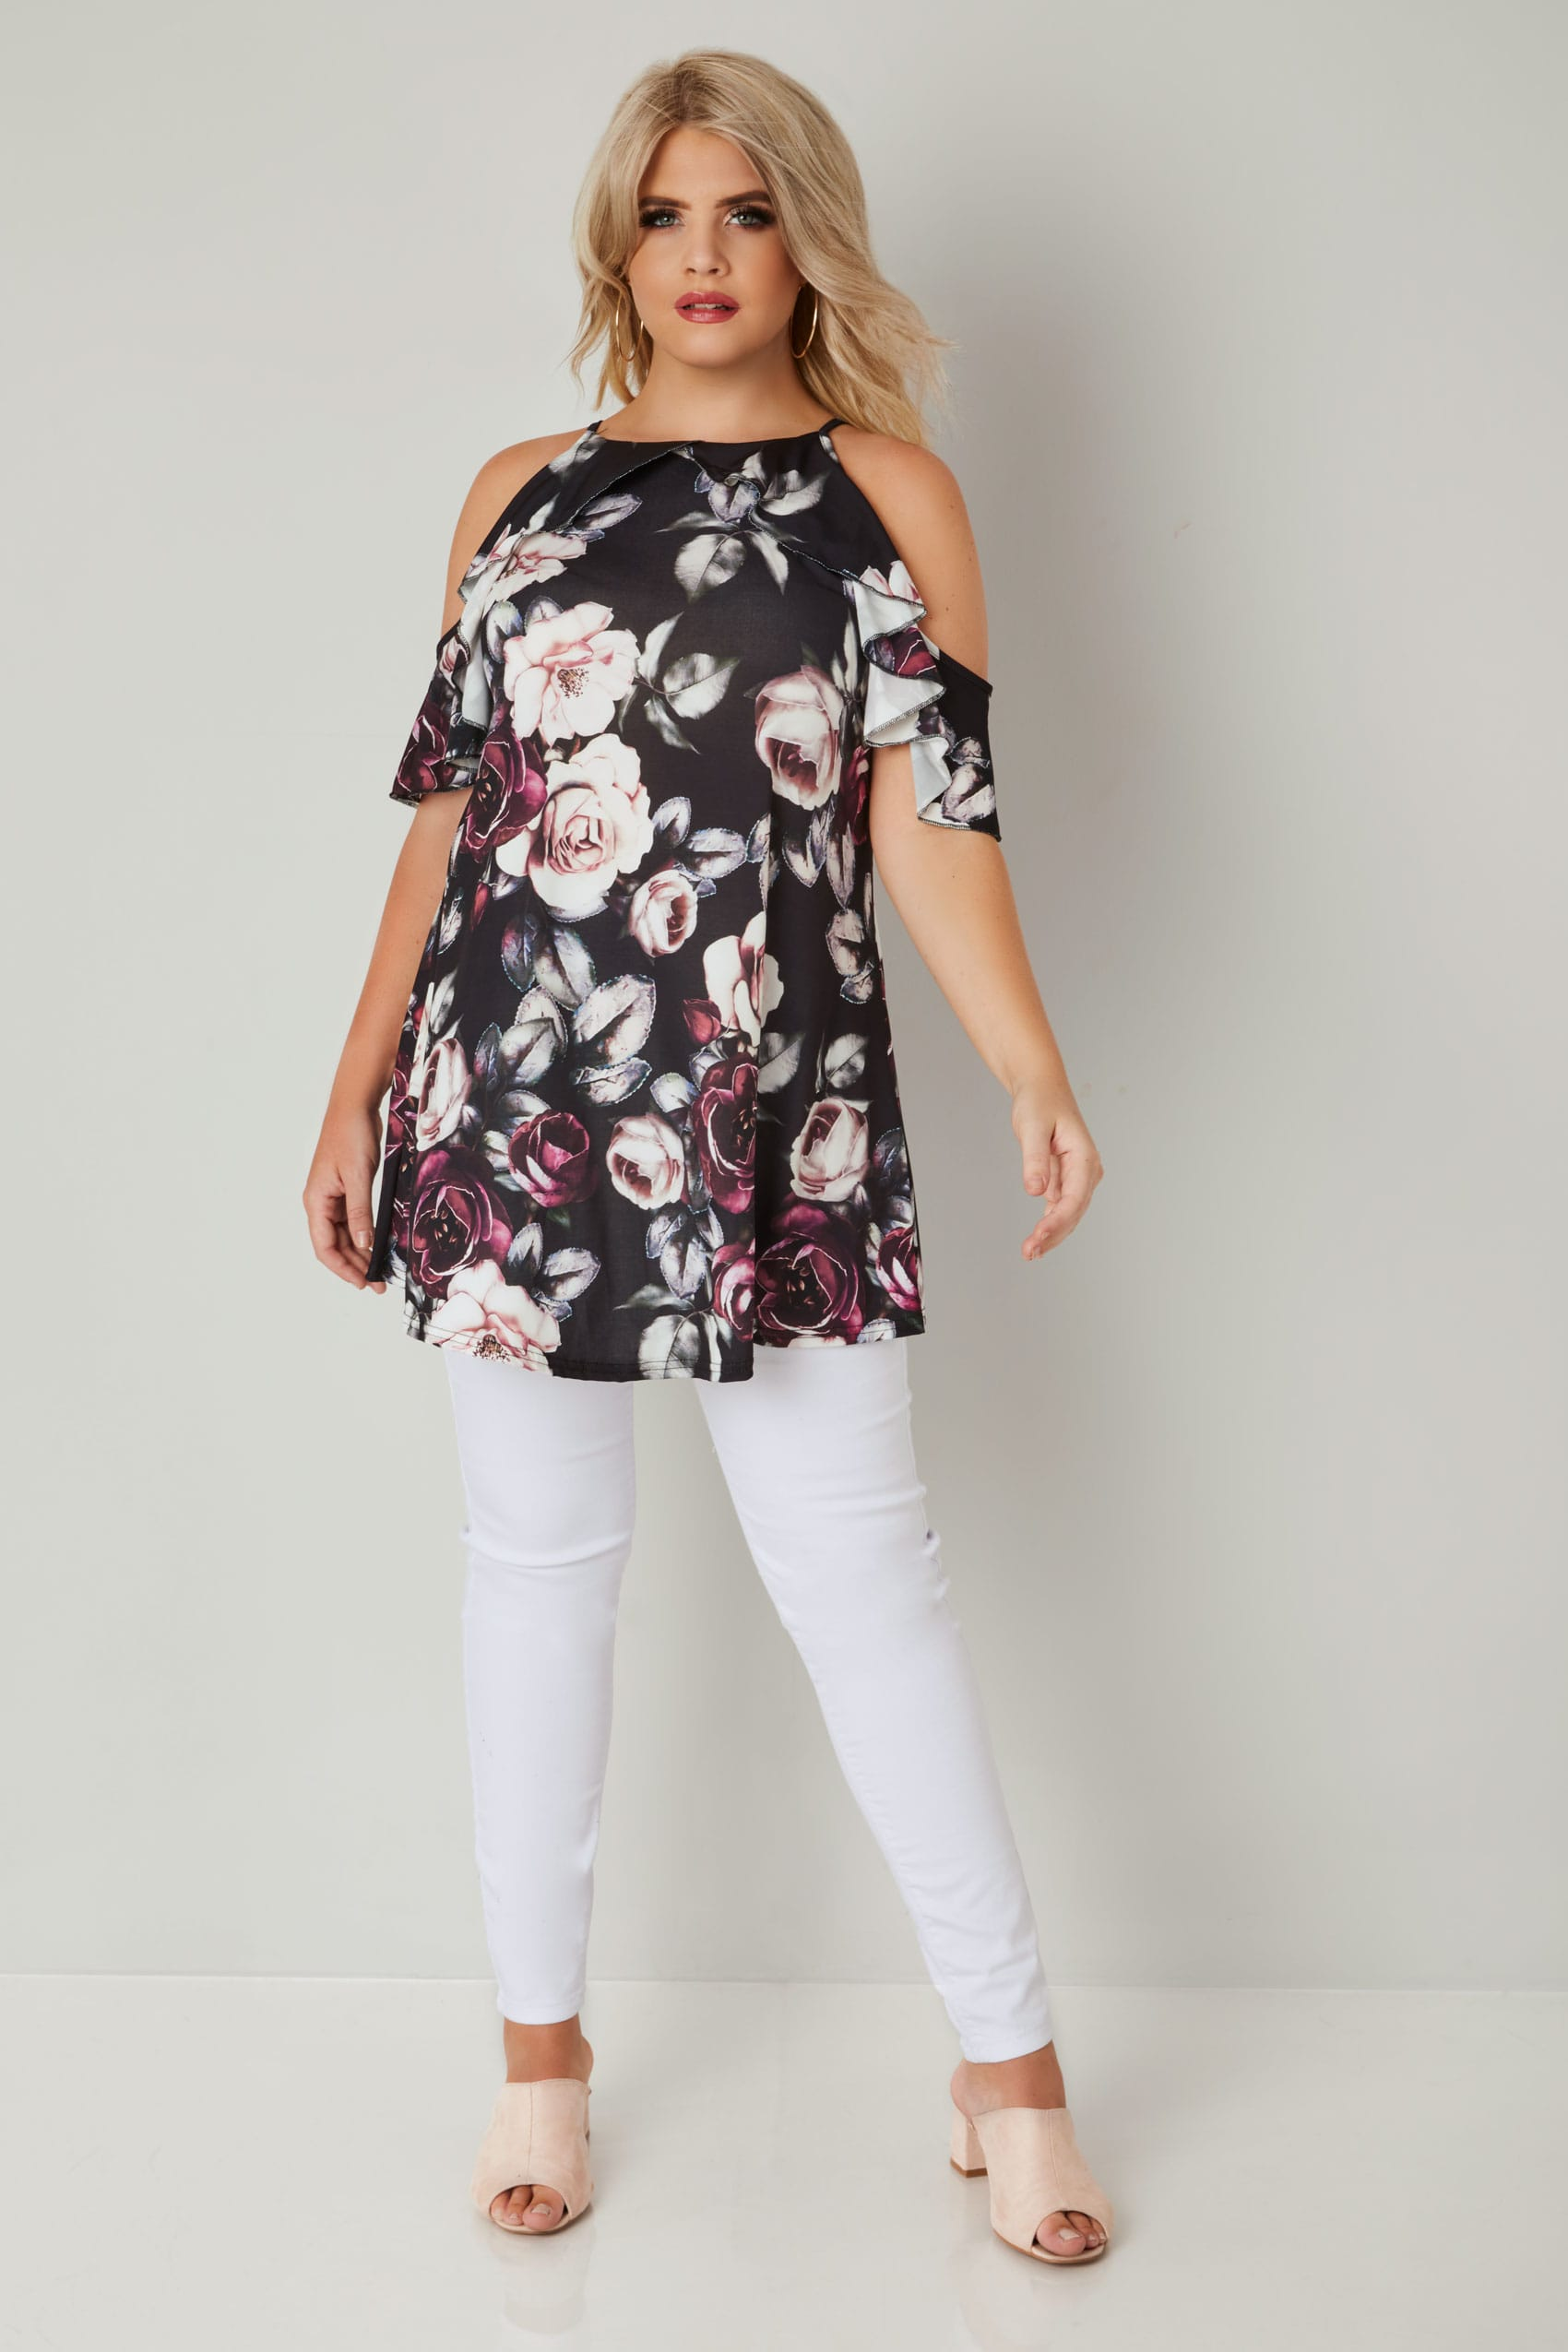 eb3999ddf9fd3 Black   Multi Floral Print Frill Sleeve Longline Cold Shoulder Top ...